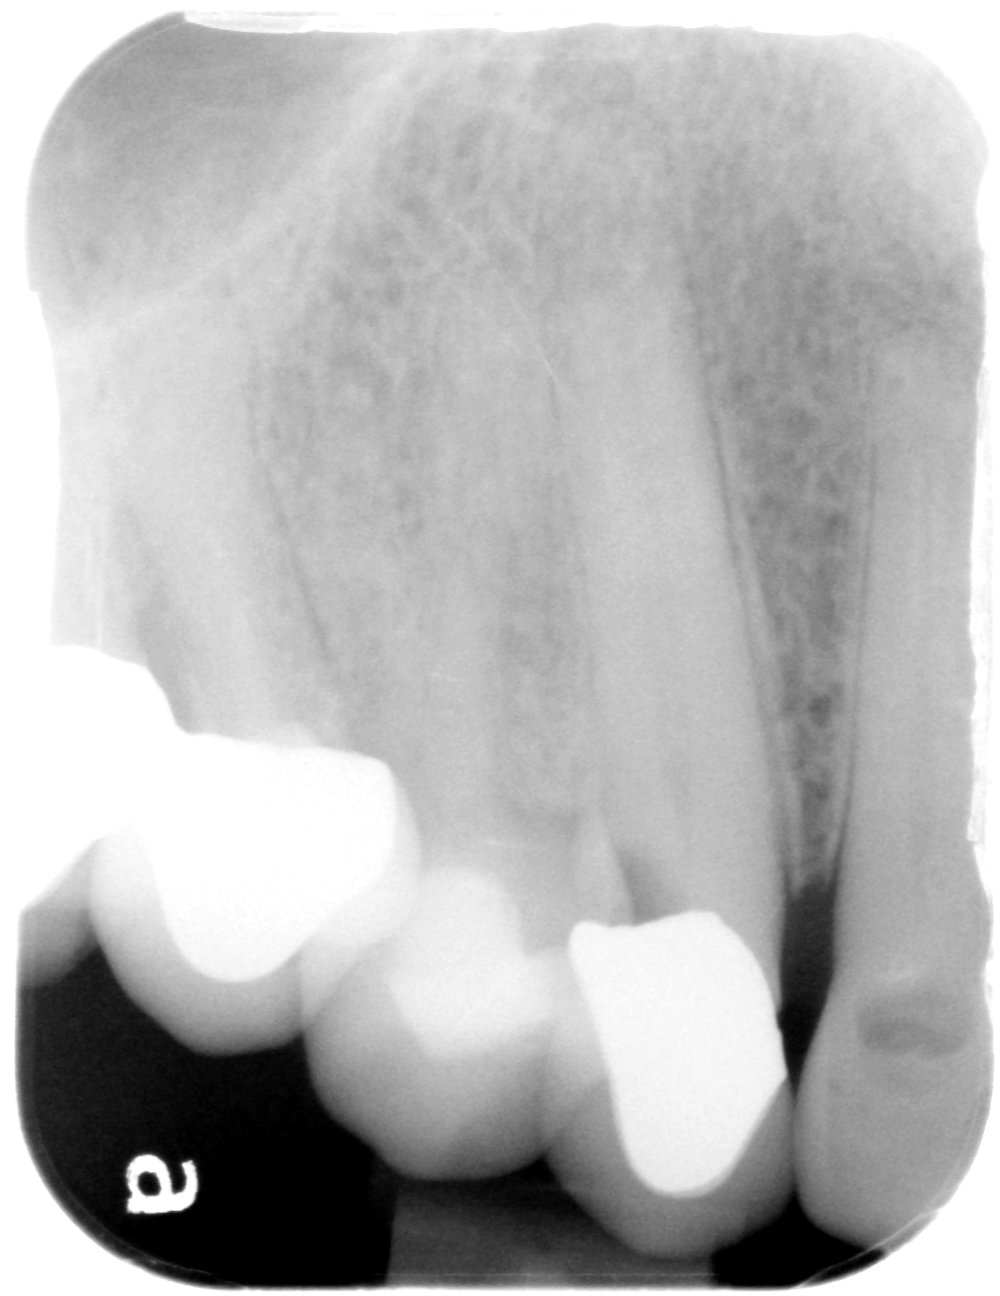 Maclean b root canal before.jpg